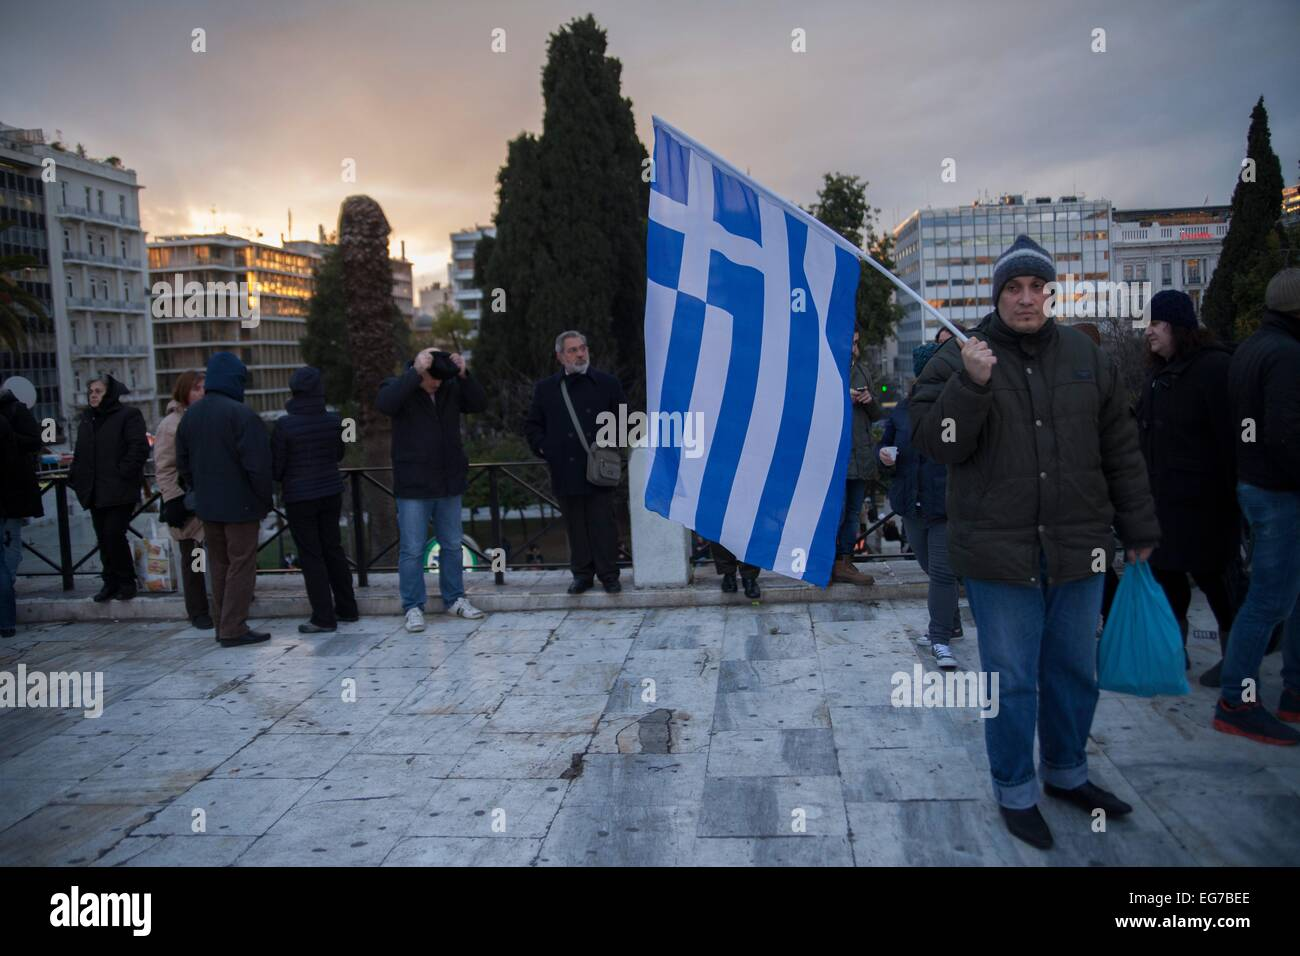 Greek man with Greek flag. Protest of Greeks for support for negotiation economic situation of Greece. 16.02.2015 - Stock Image